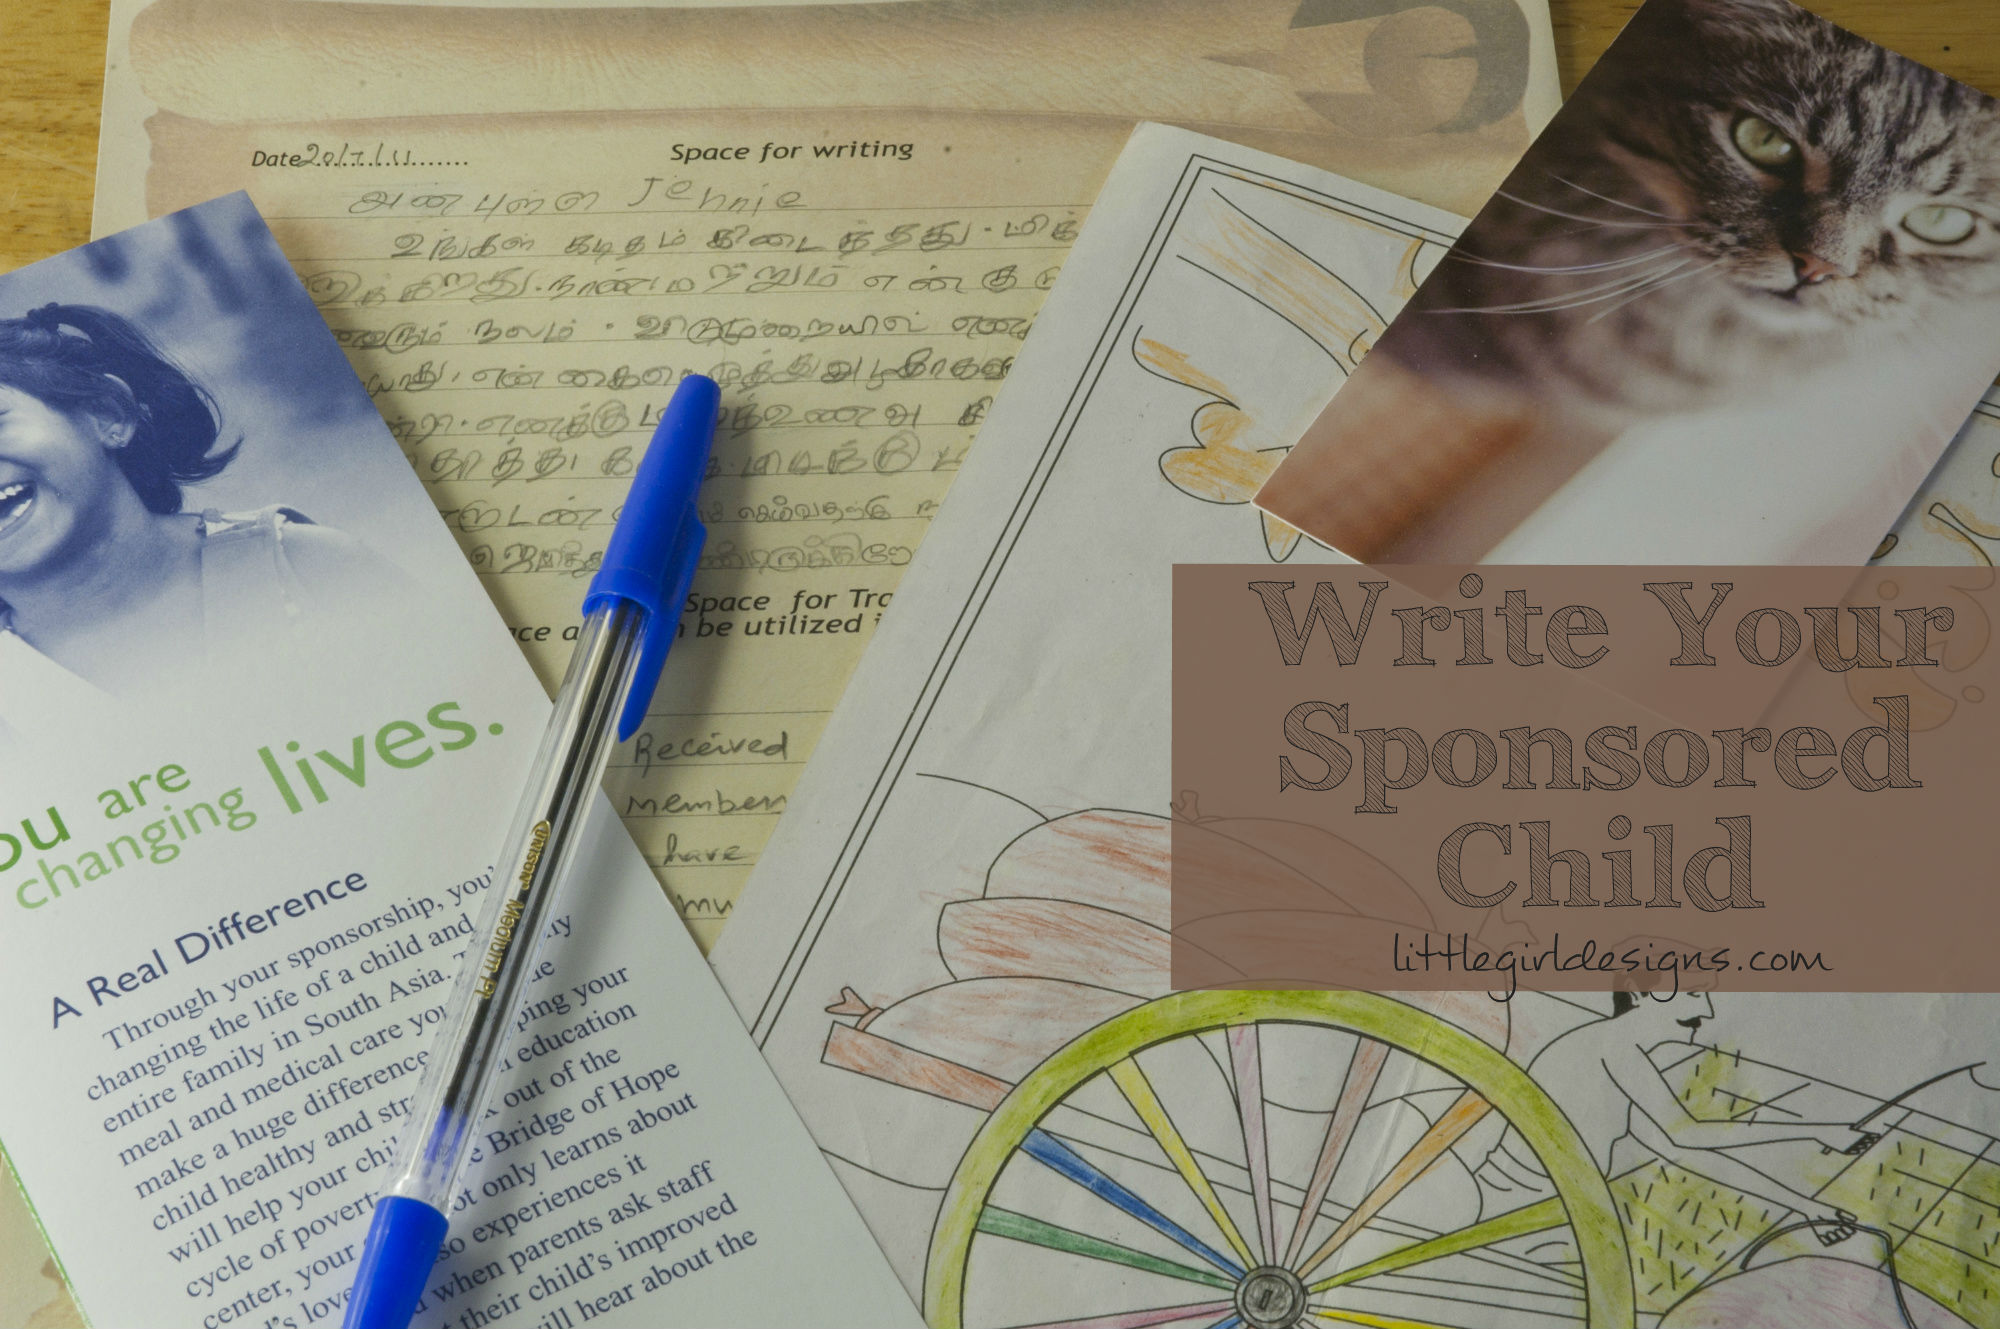 Letters from a sponsored child and a picture of a cat on a desk.